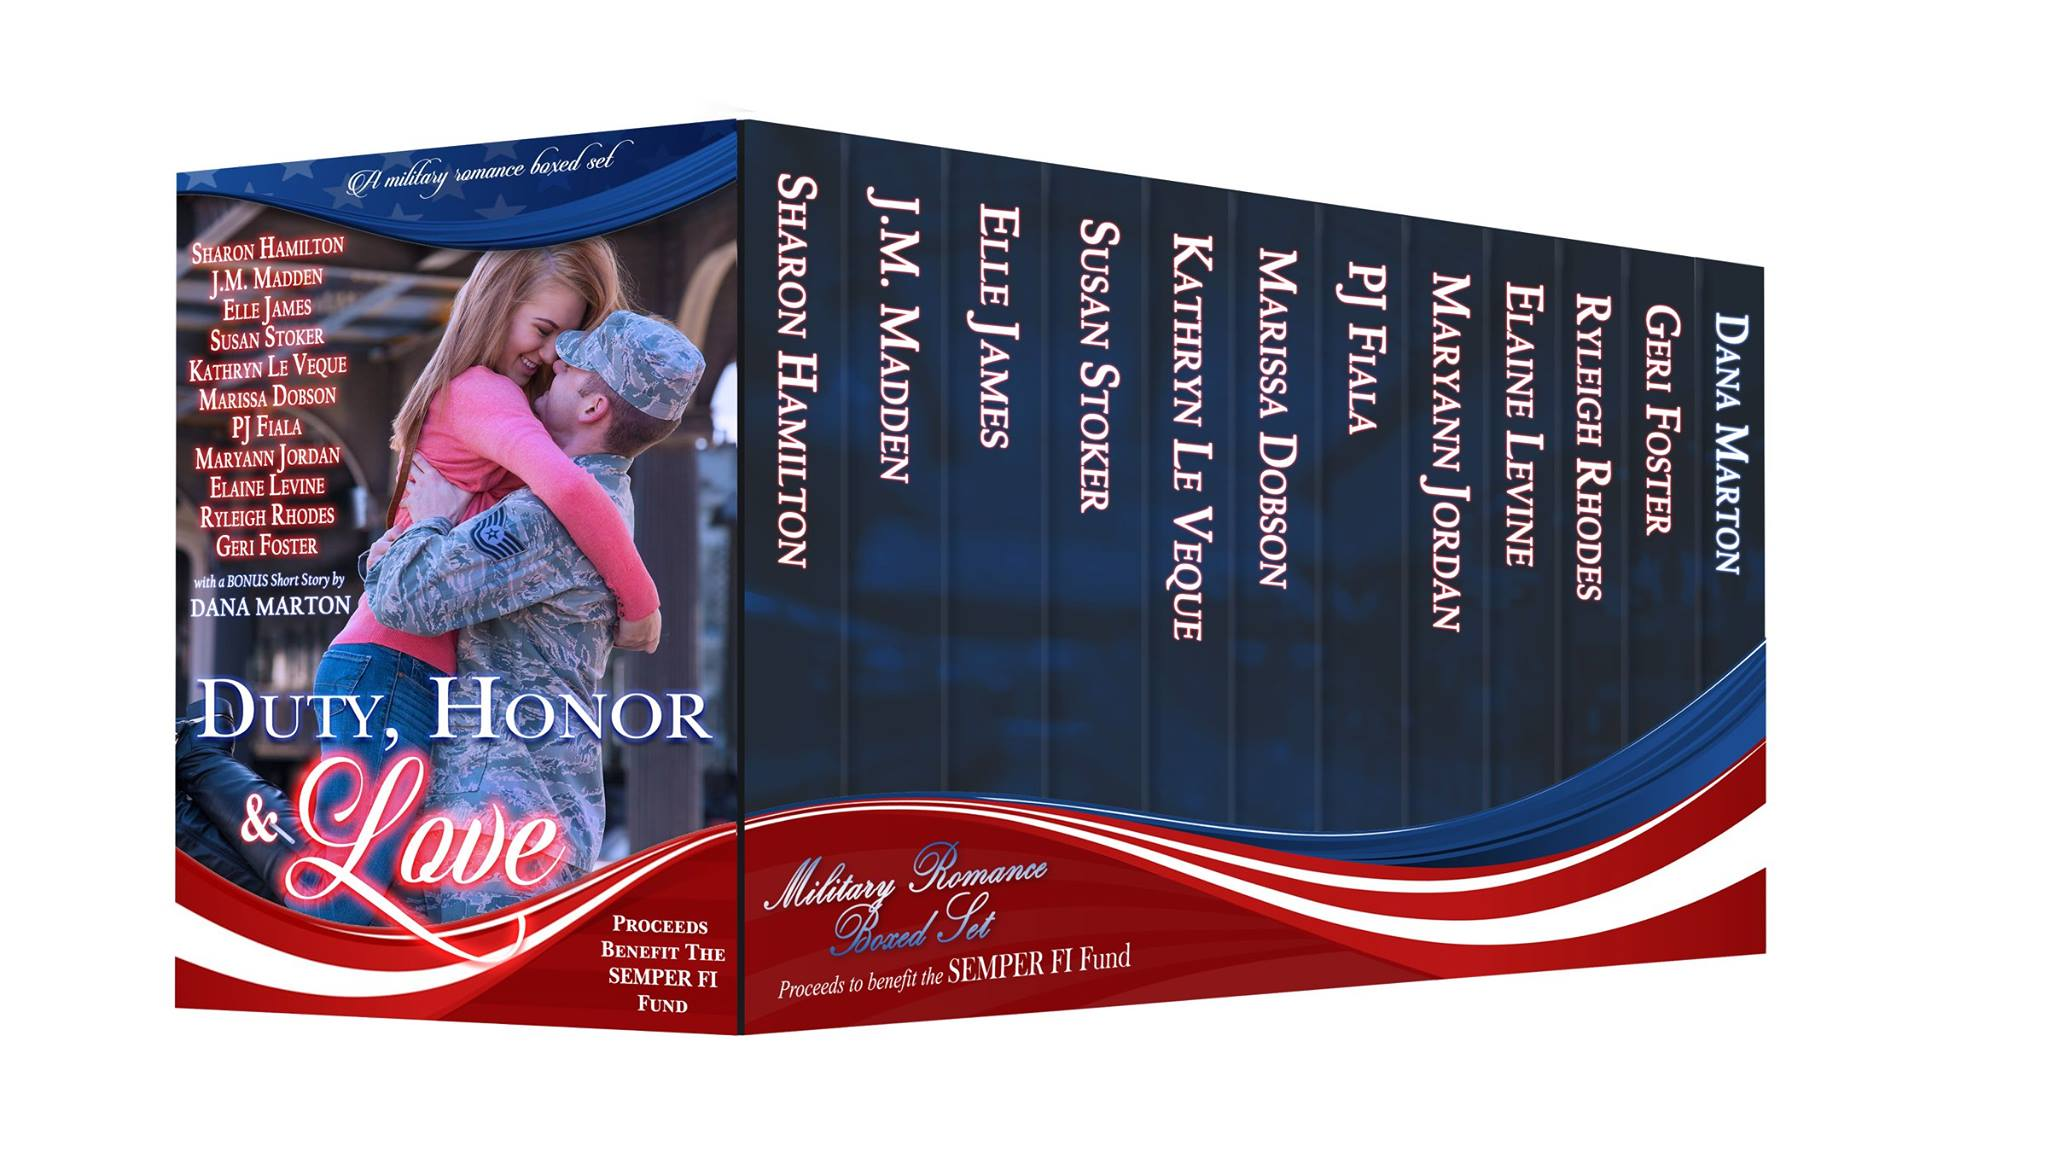 Duty honor love charity box set benefiting the for Semper fi fund rating